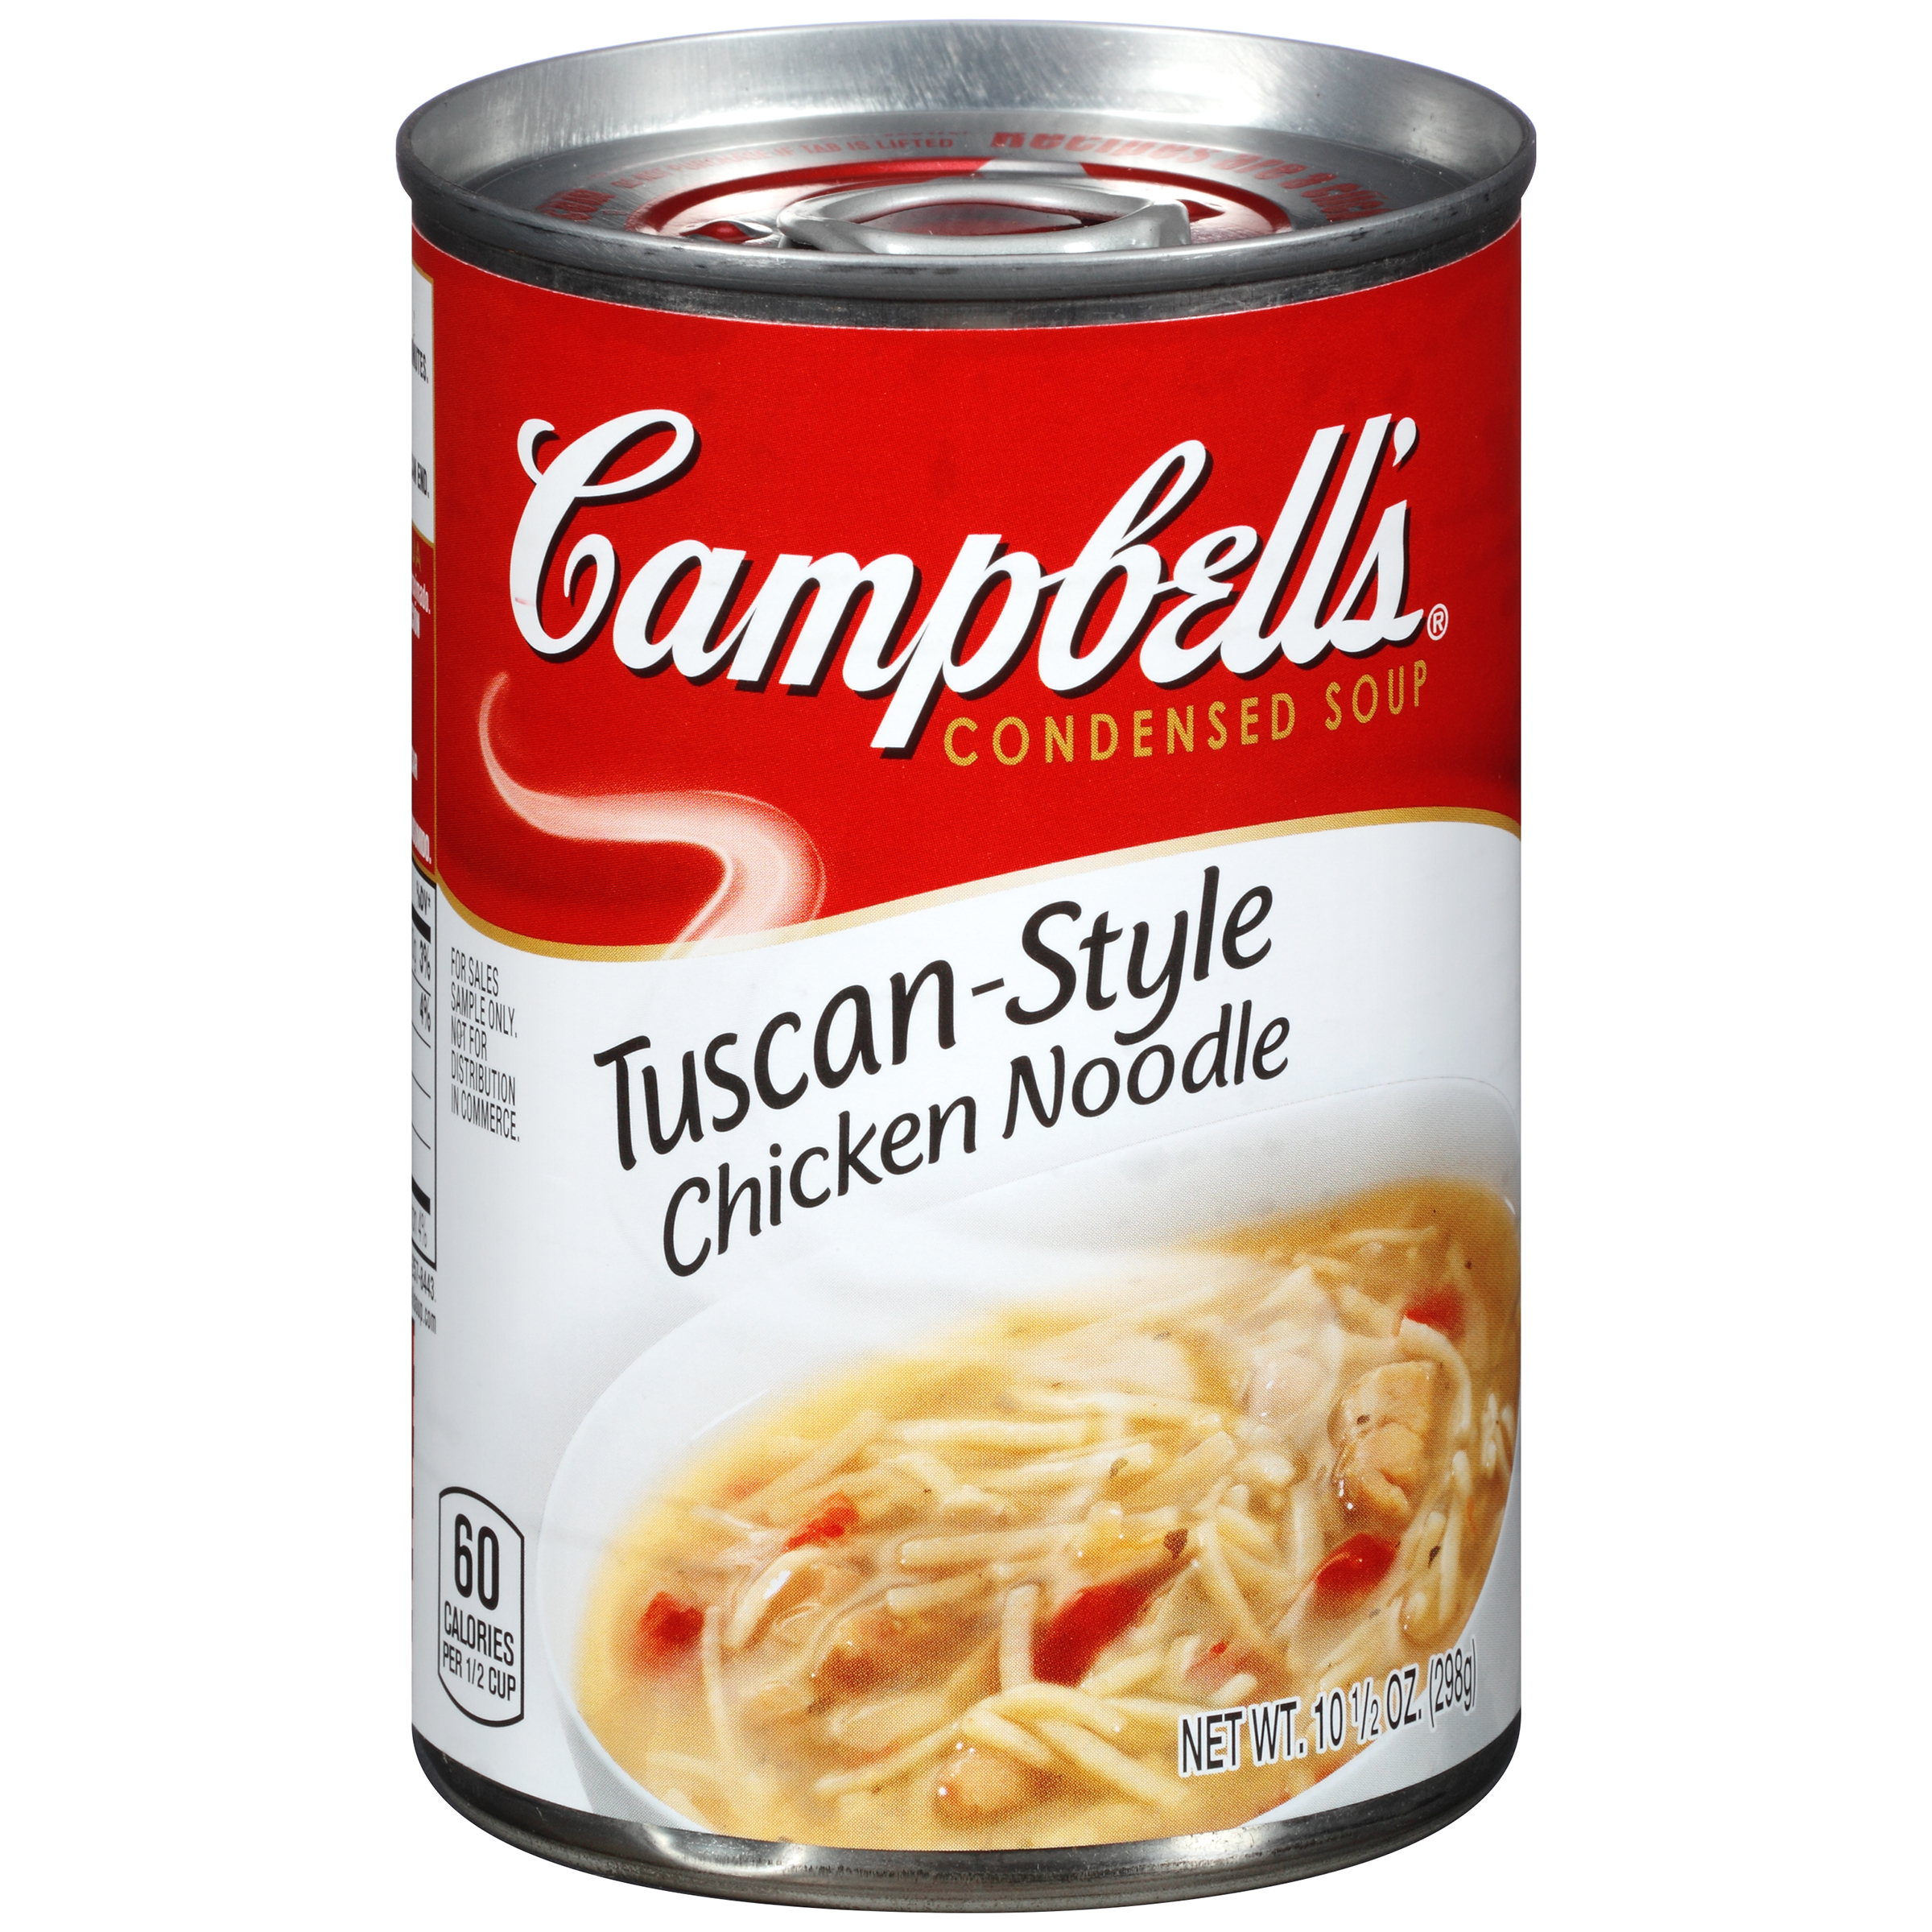 Campbell's Tuscan-Style Chicken Noodle Soup 10.5oz by Campbell Soup Company